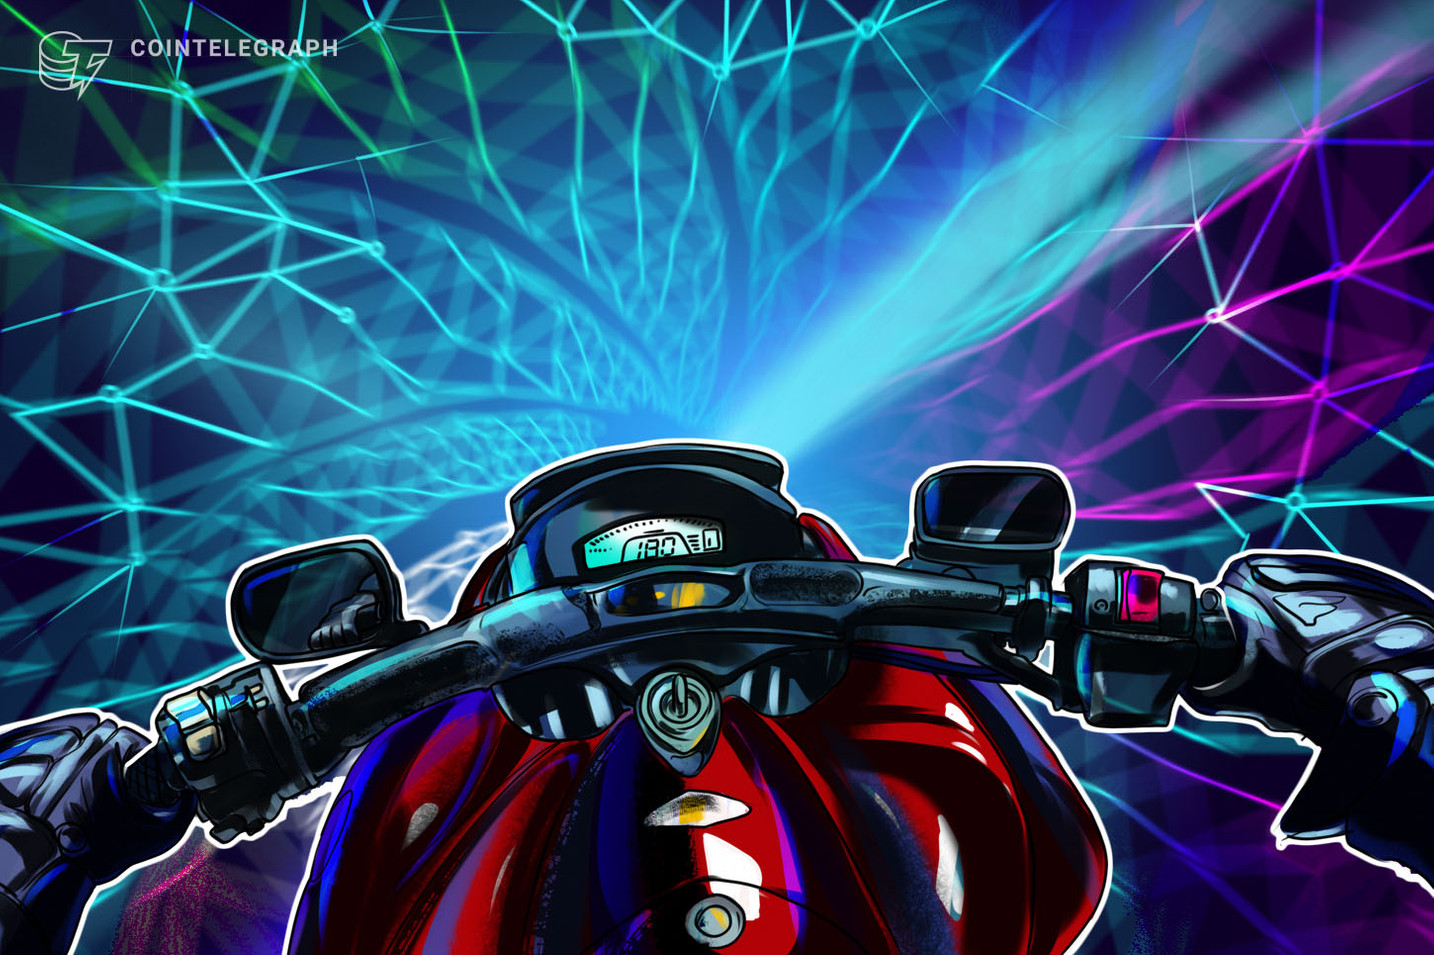 Chinese Internet Giant Tencent Launches Blockchain Accelerator